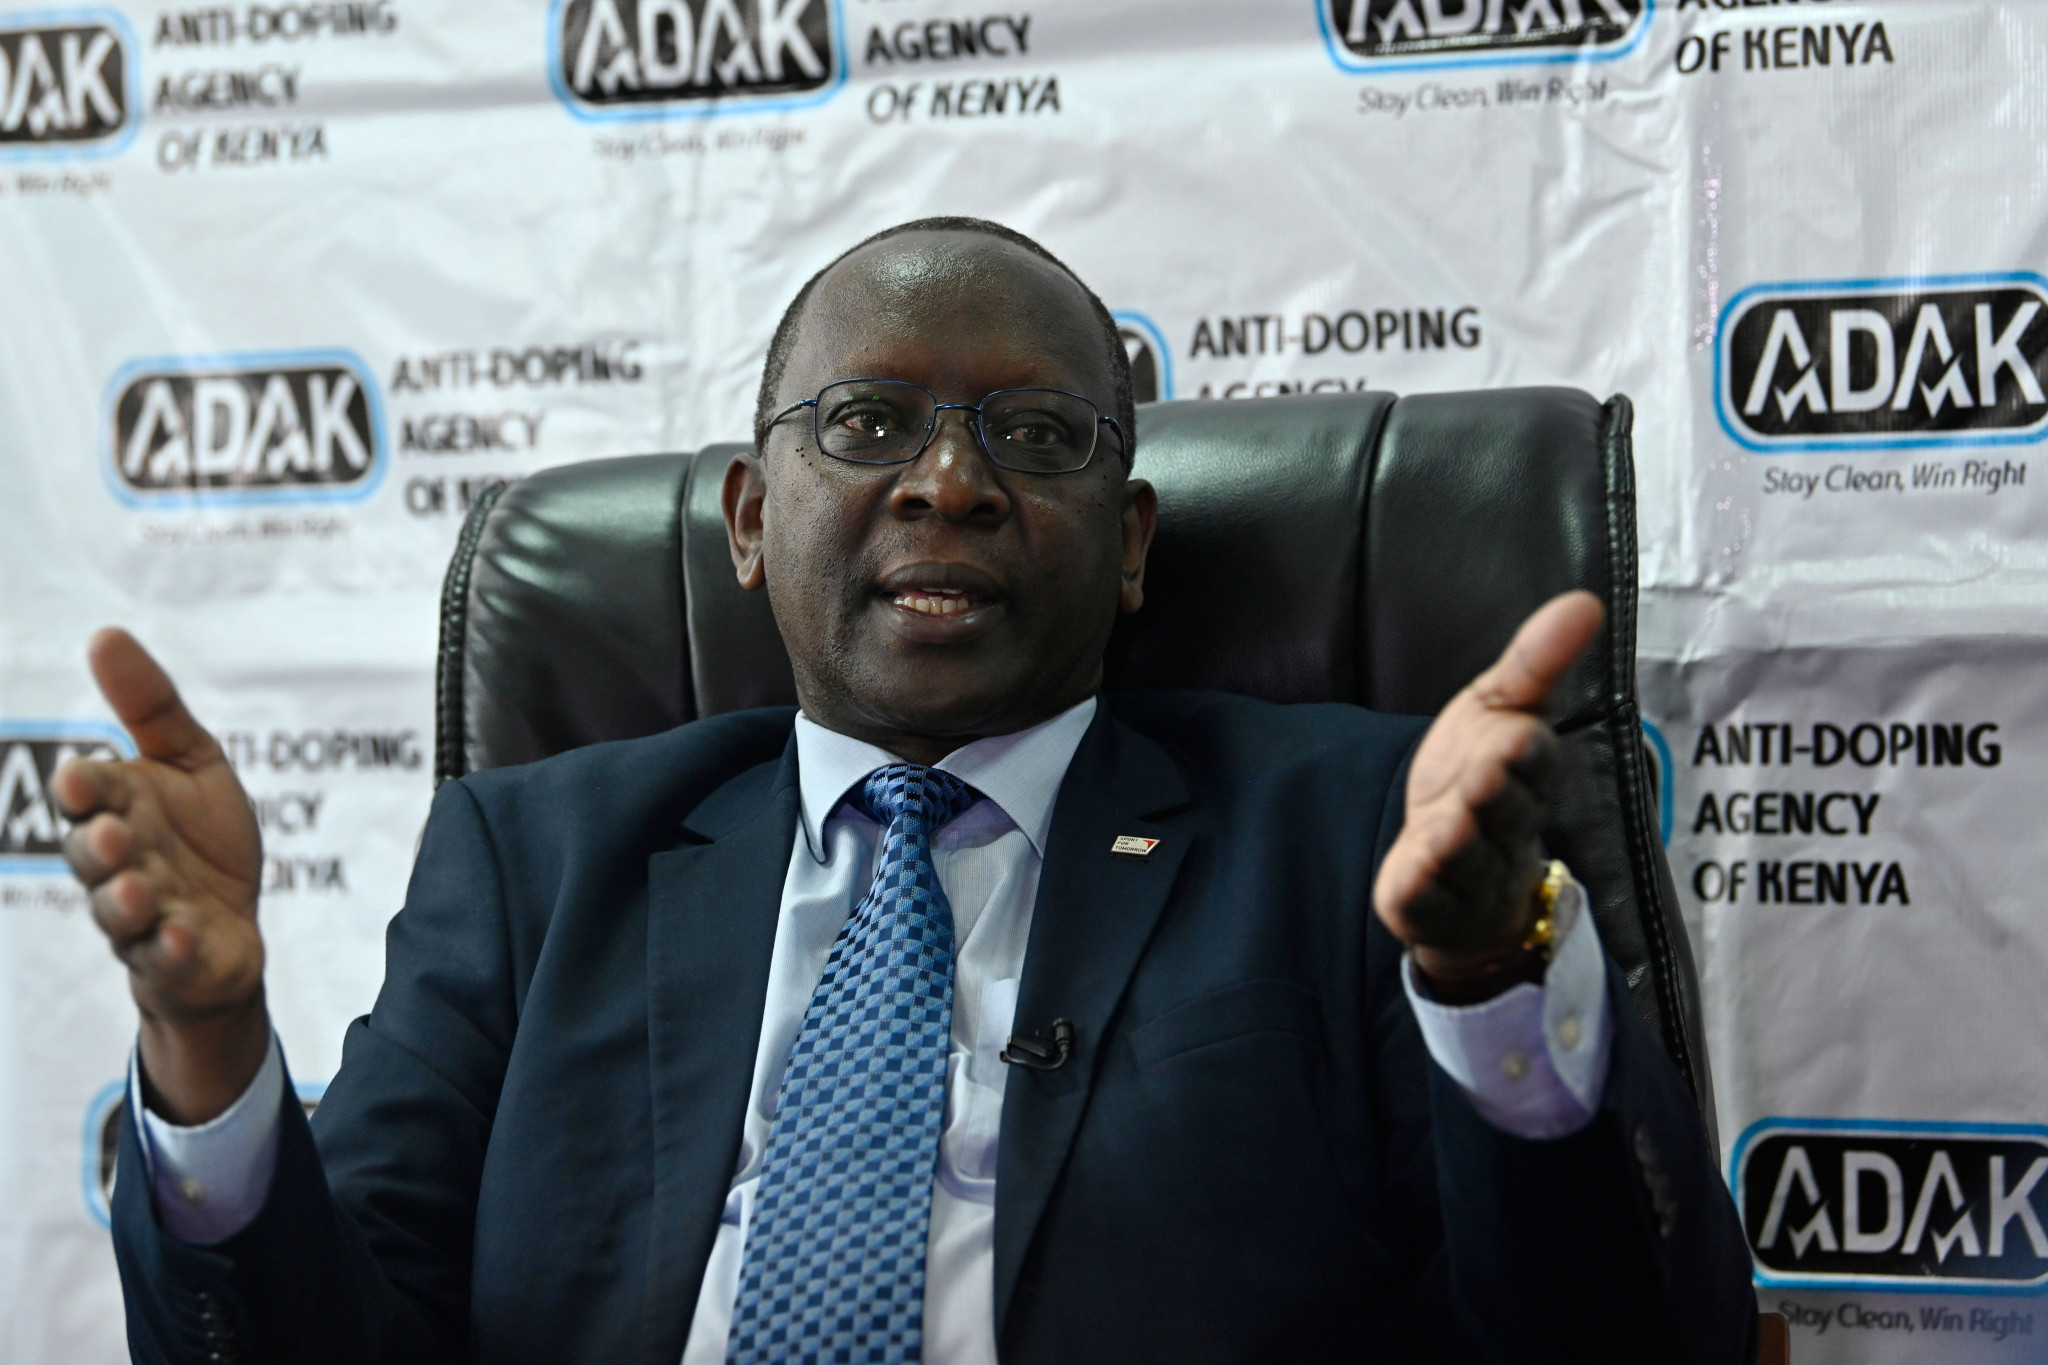 Anti-Doping Agency of Kenya chief executive Japhter Rugut has warned athlete they still face testing despite the pandemic ©Getty Images